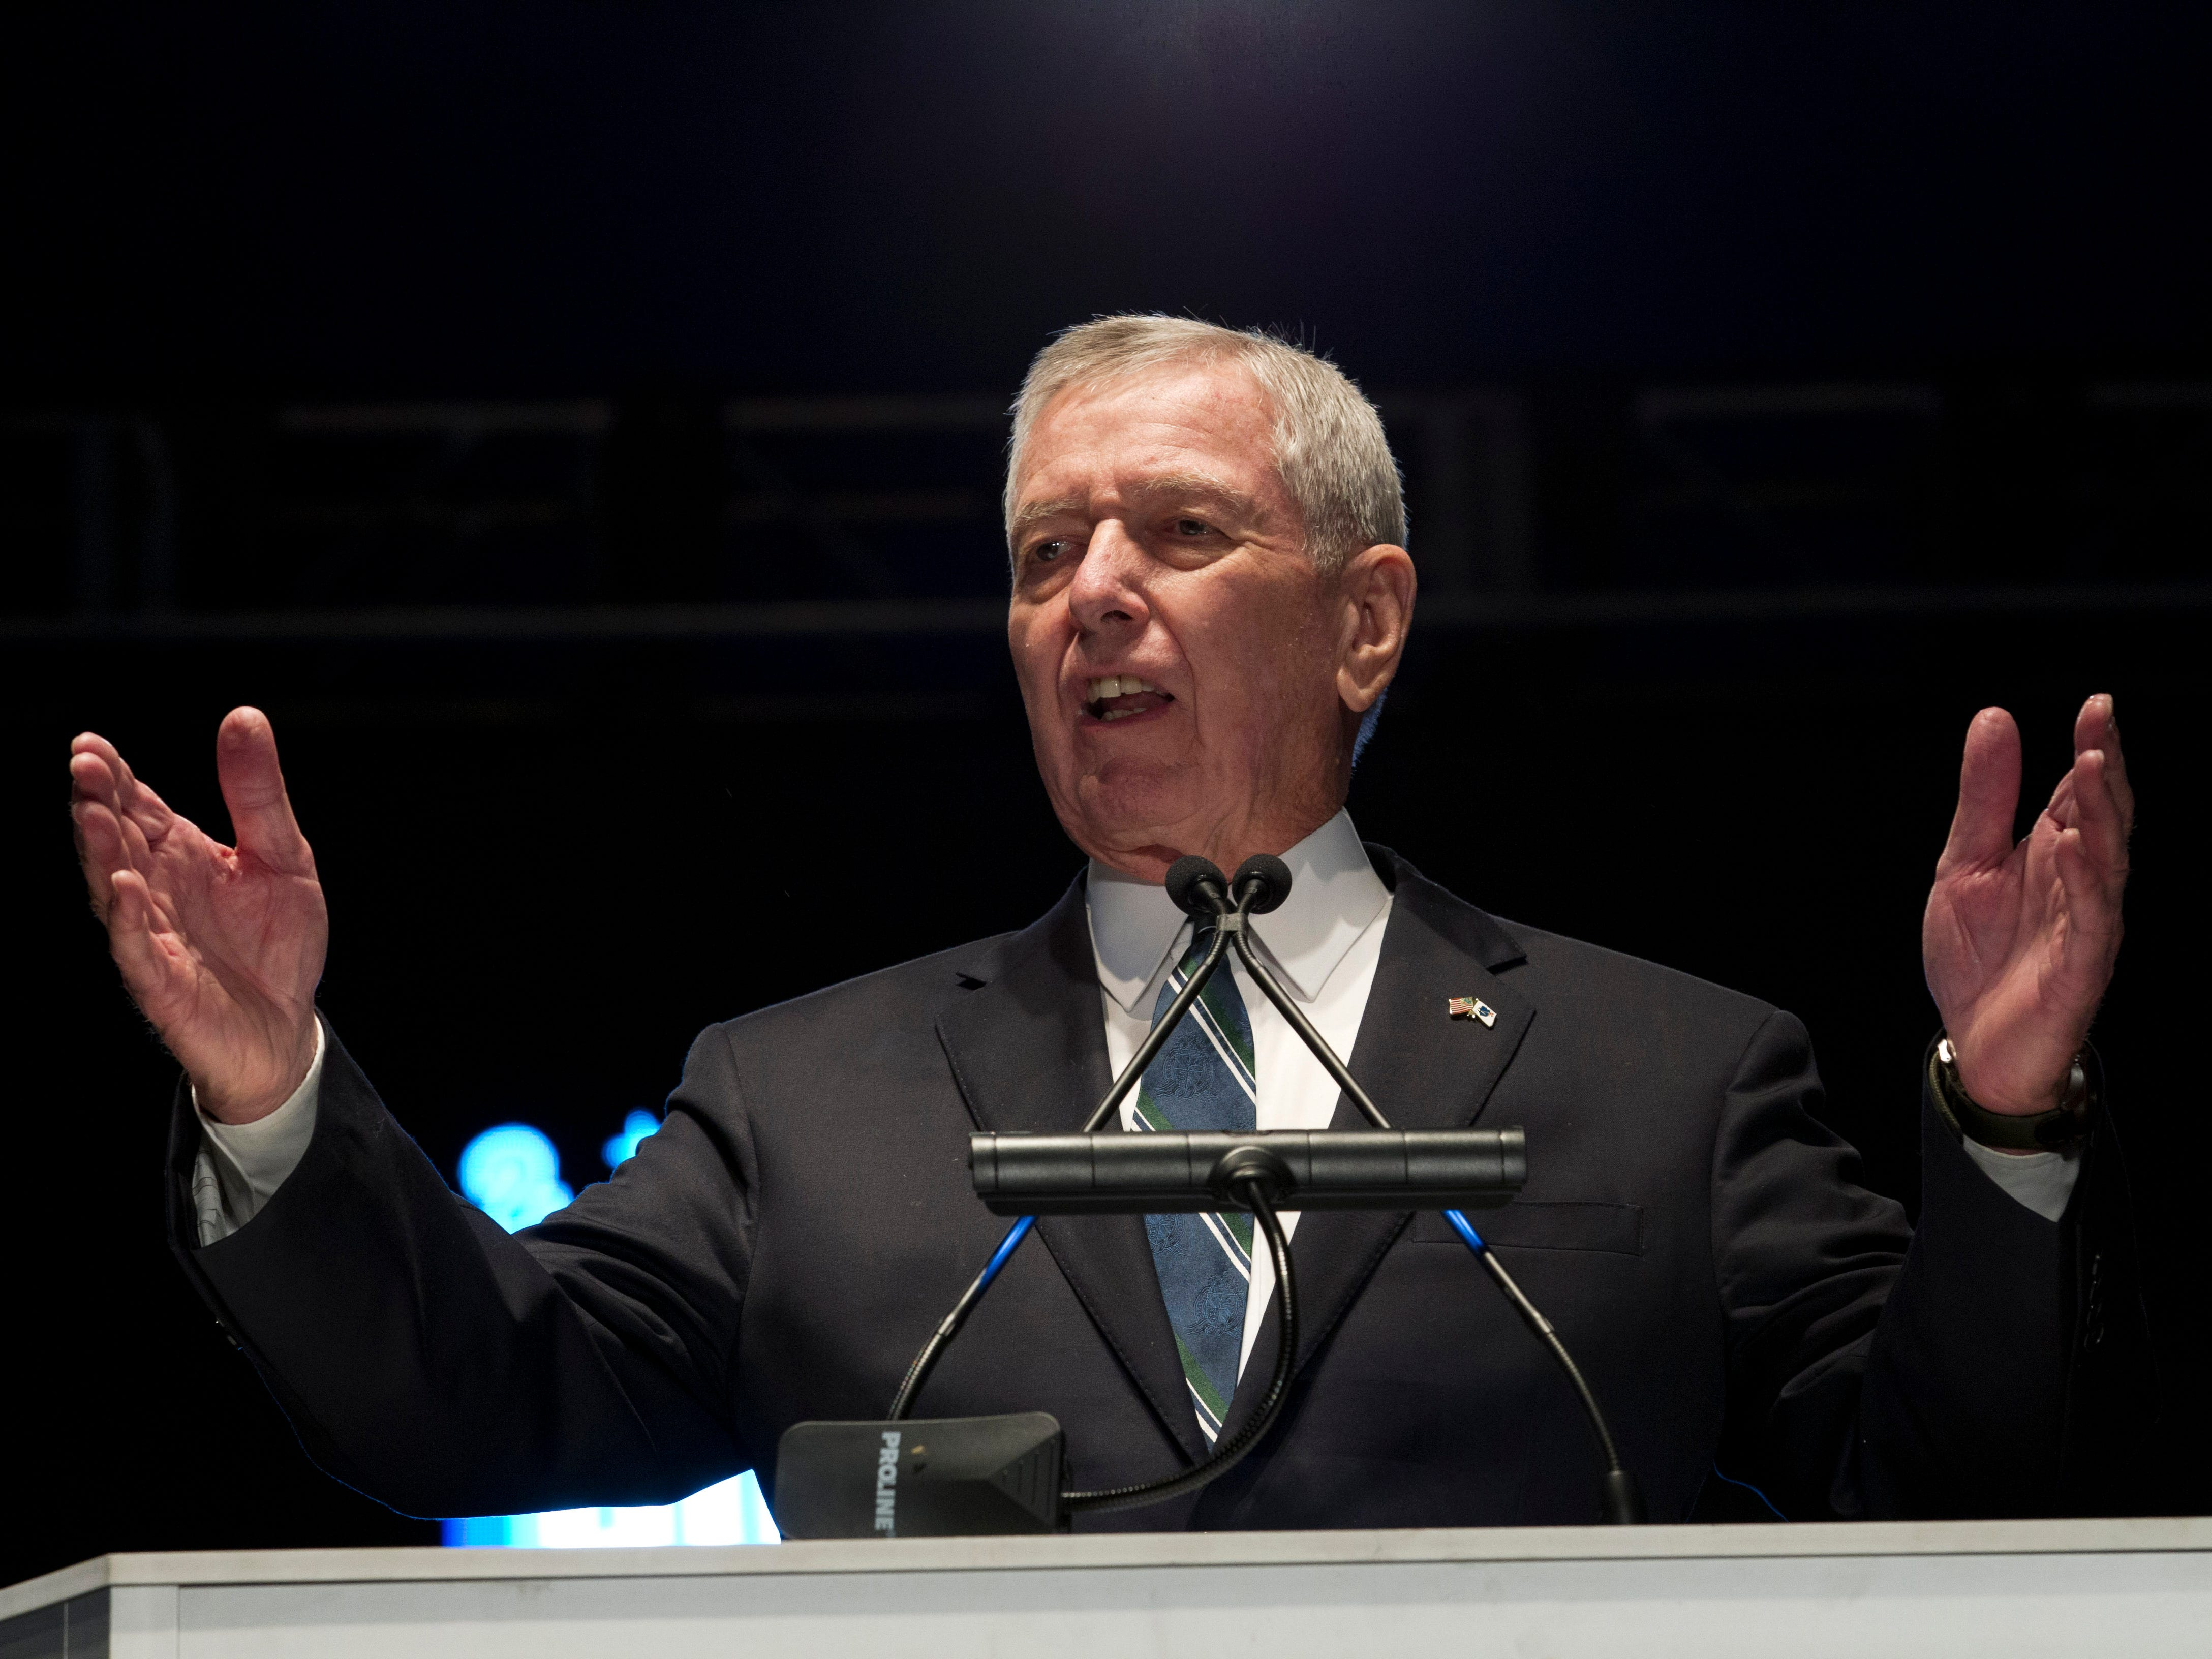 Former Attorney General John Ashcroft speaks at the National Law Enforcement Officers Memorial Fund Annual Candlelight Vigil to commemorate new names added to the monument, during a ceremony at the National Mall in Washington, Monday, May 13, 2019.